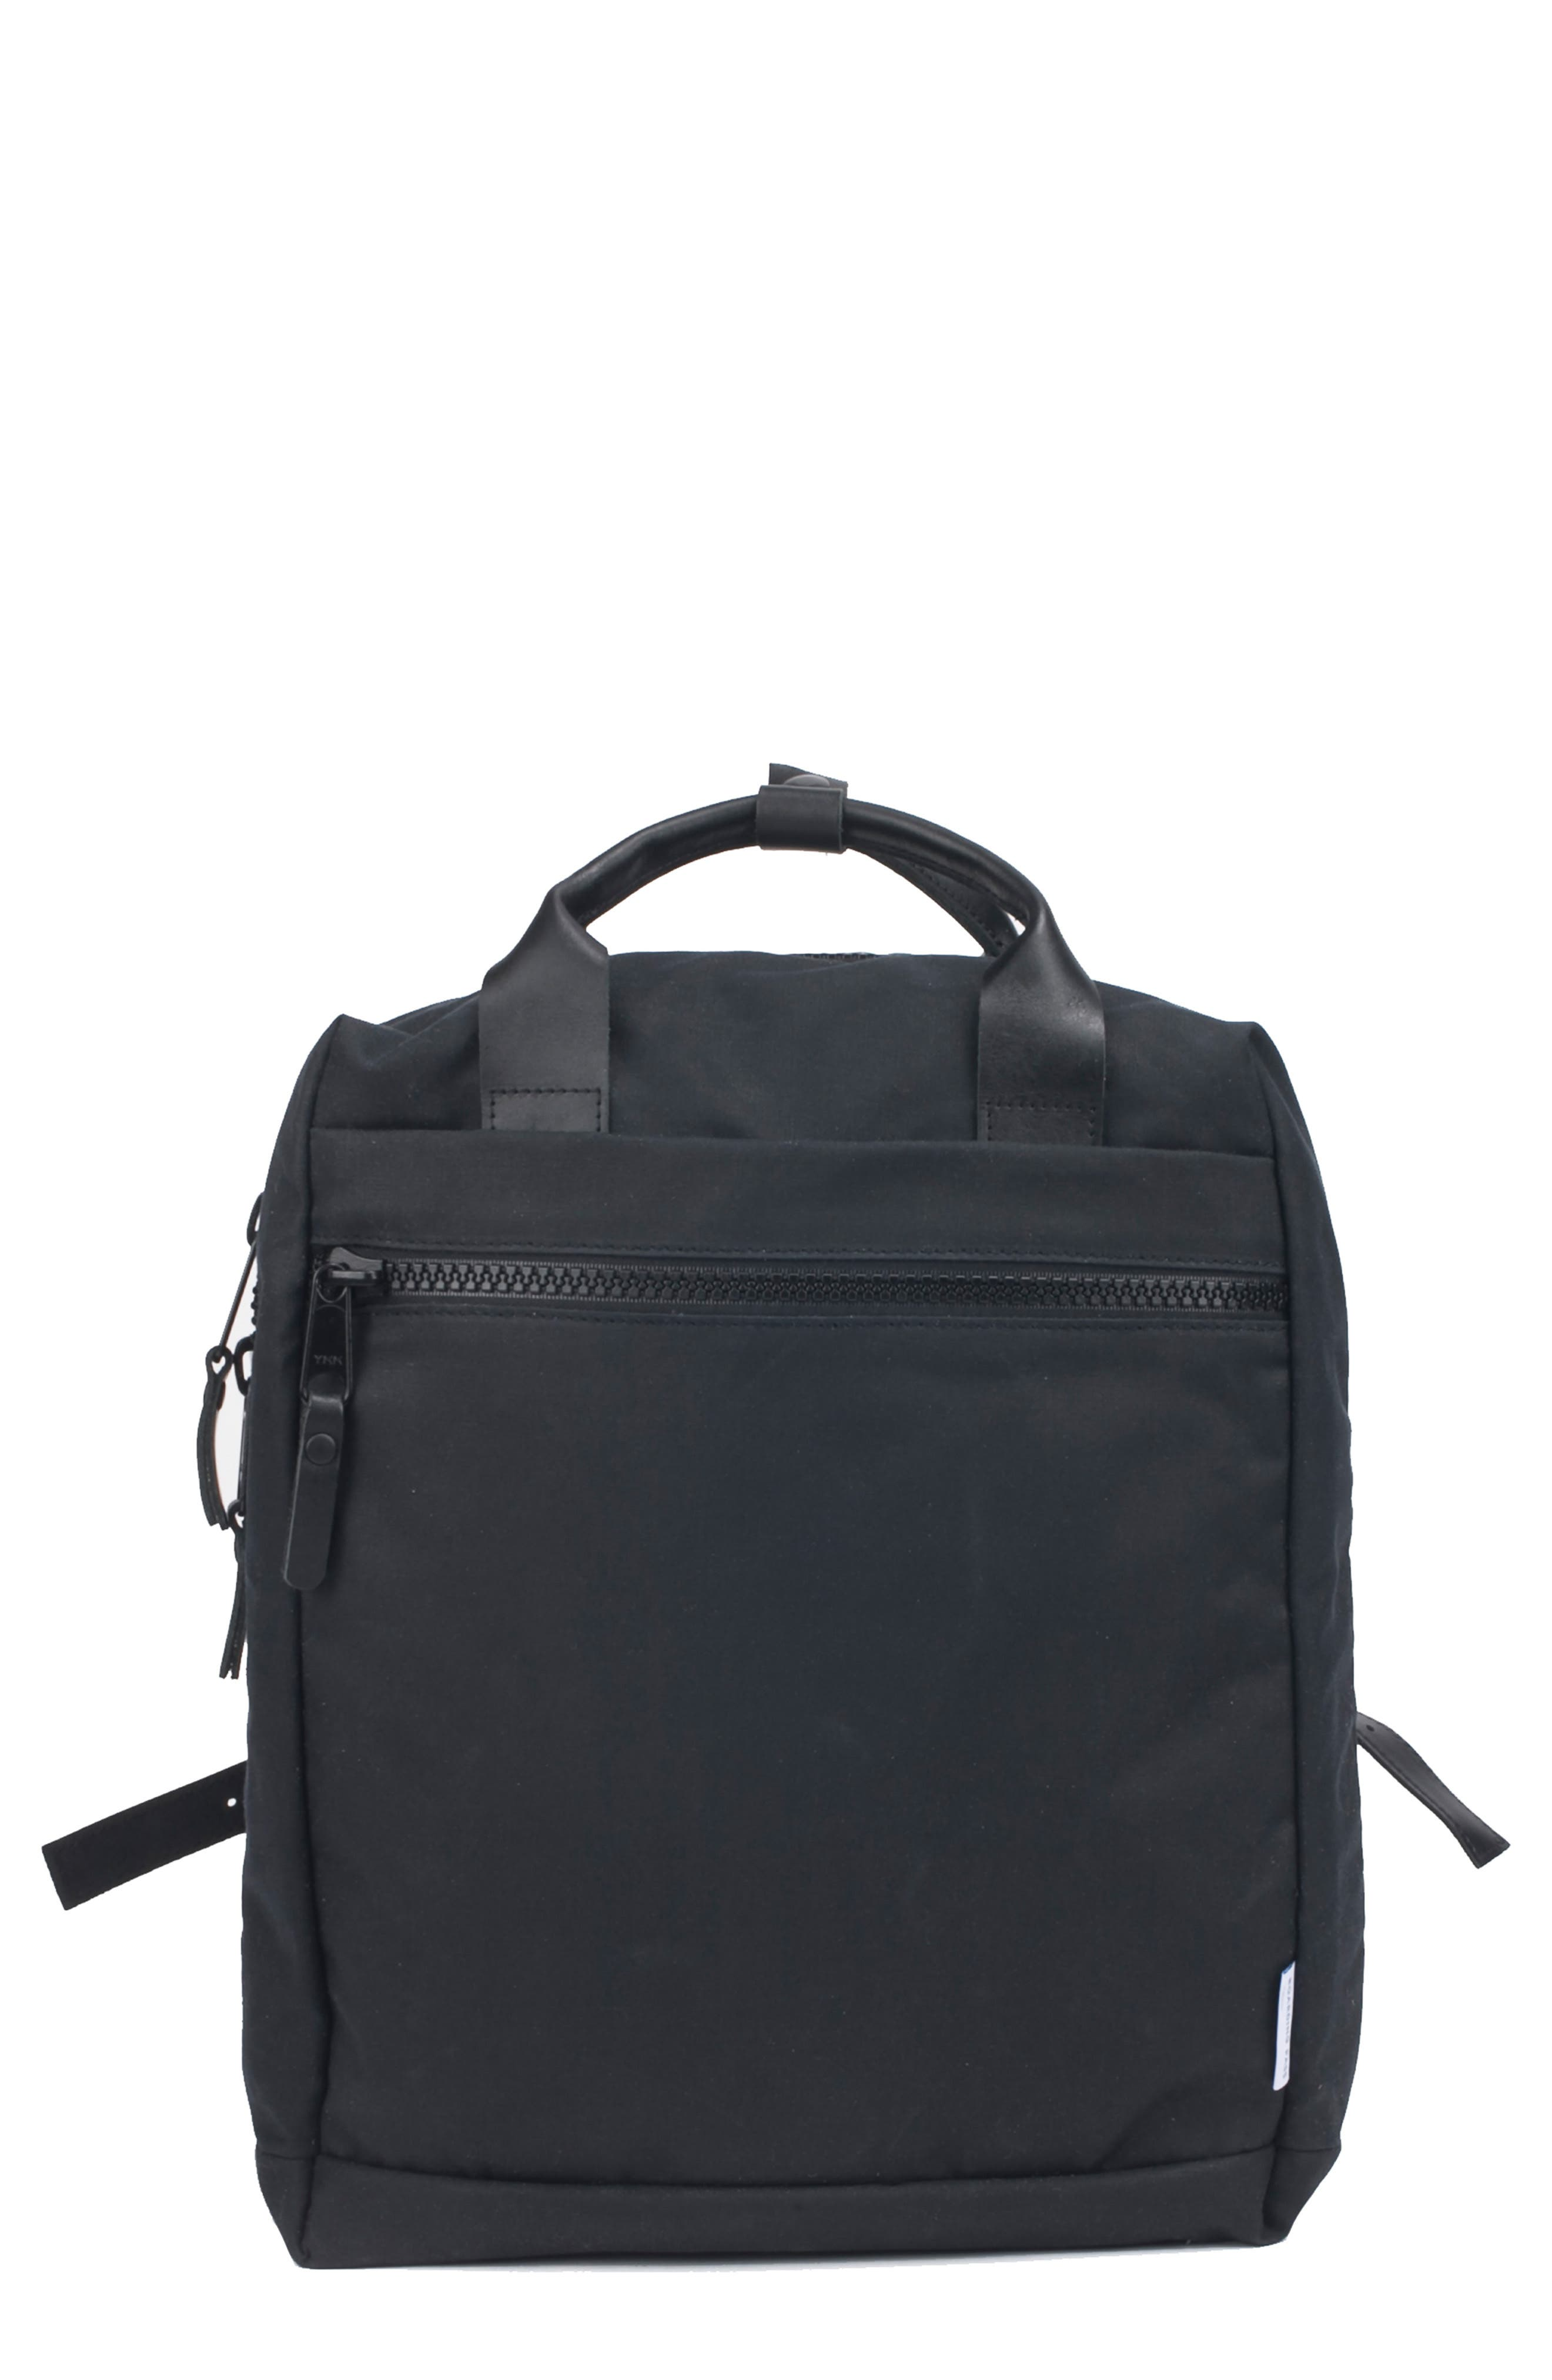 Metro Backpack,                             Main thumbnail 1, color,                             BLACK